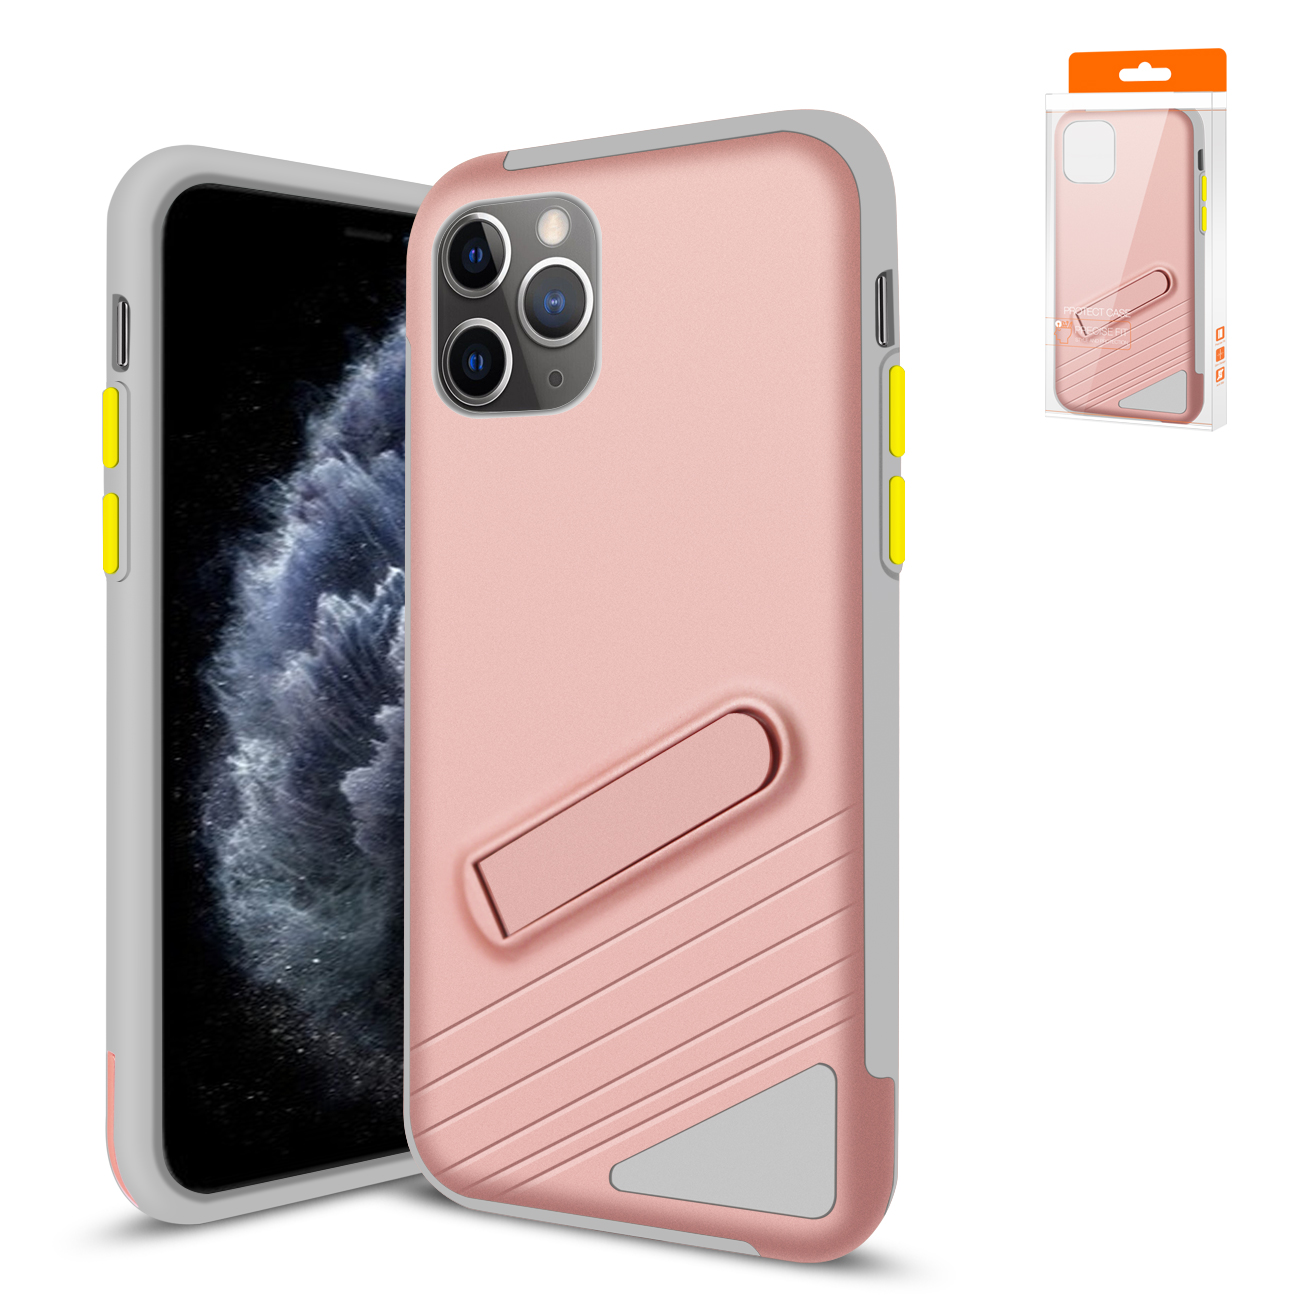 Reiko Apple iPhone 11 Pro Max Armor Cases In Rose Gold